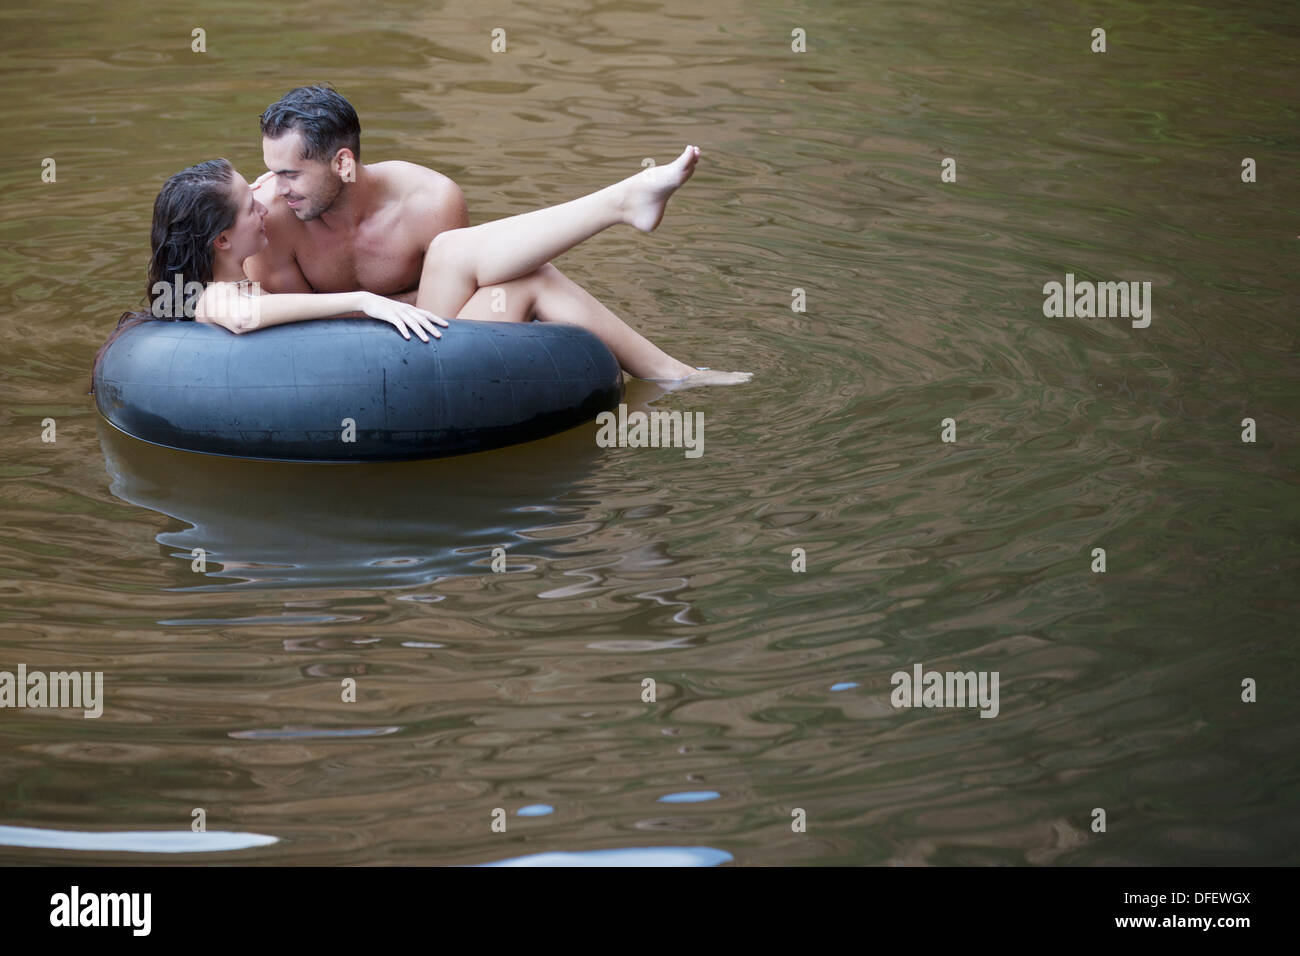 Couple playing in inner tube in river - Stock Image